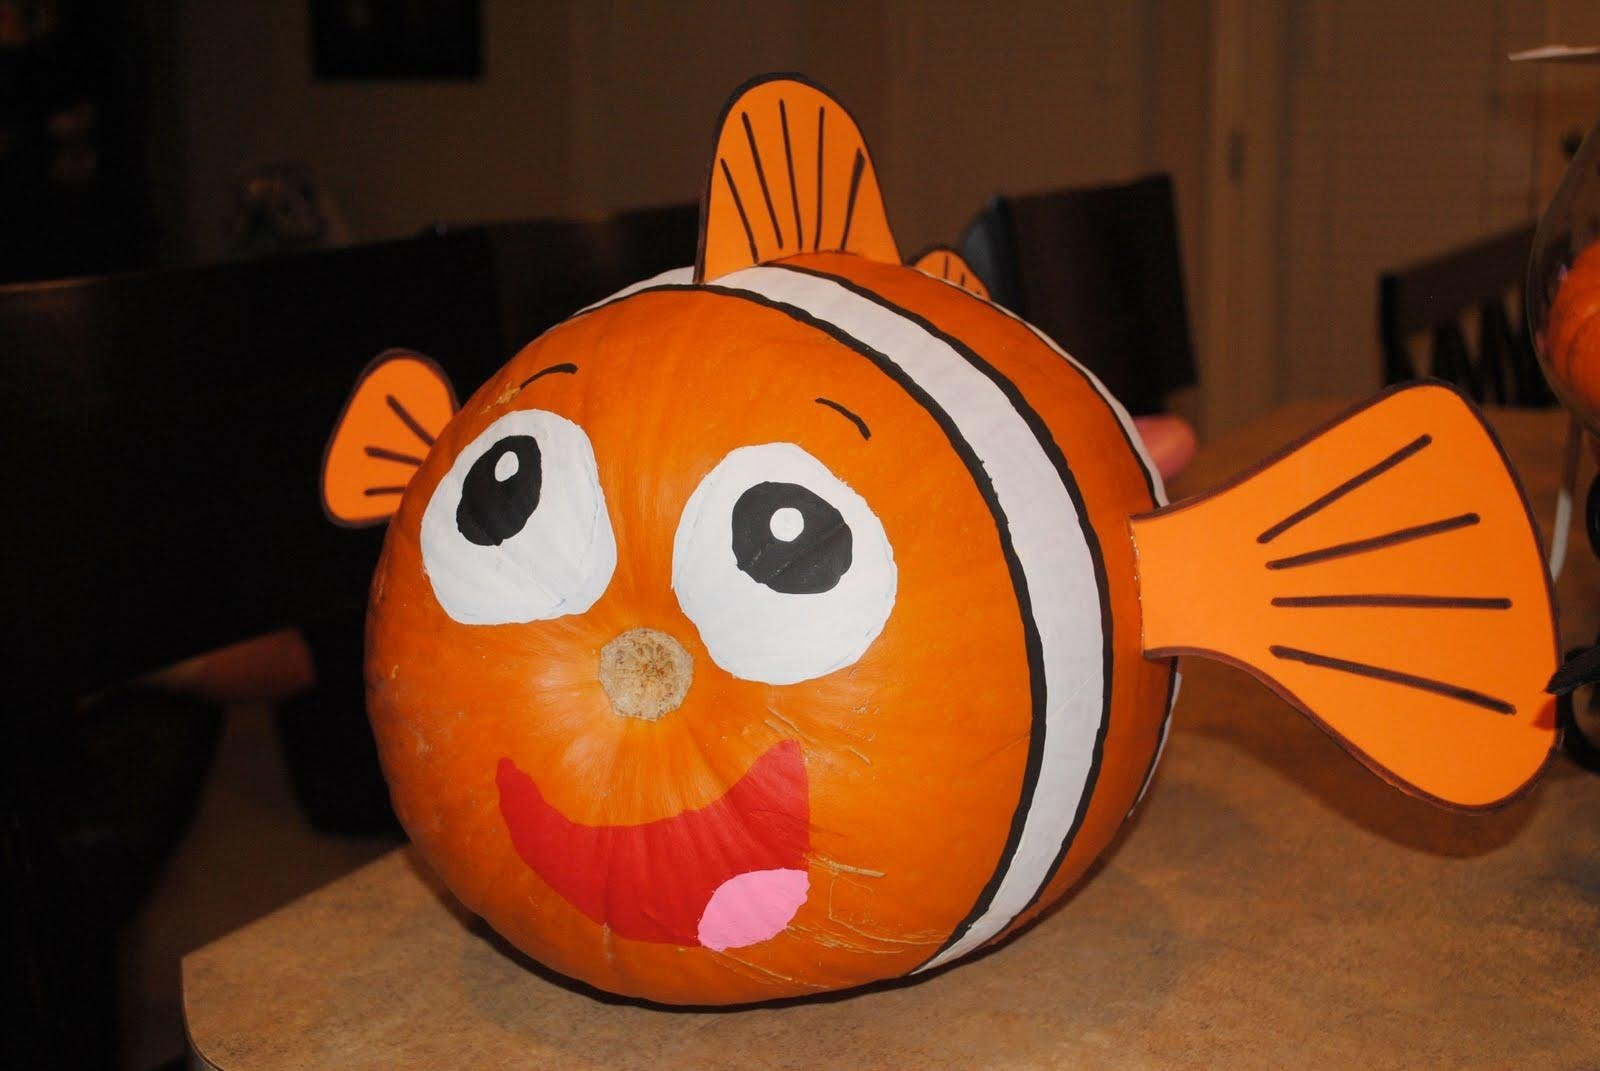 10 Fashionable Creative Pumpkin Ideas No Carving creative pumpkin painting ideas for kids house design and office 2020